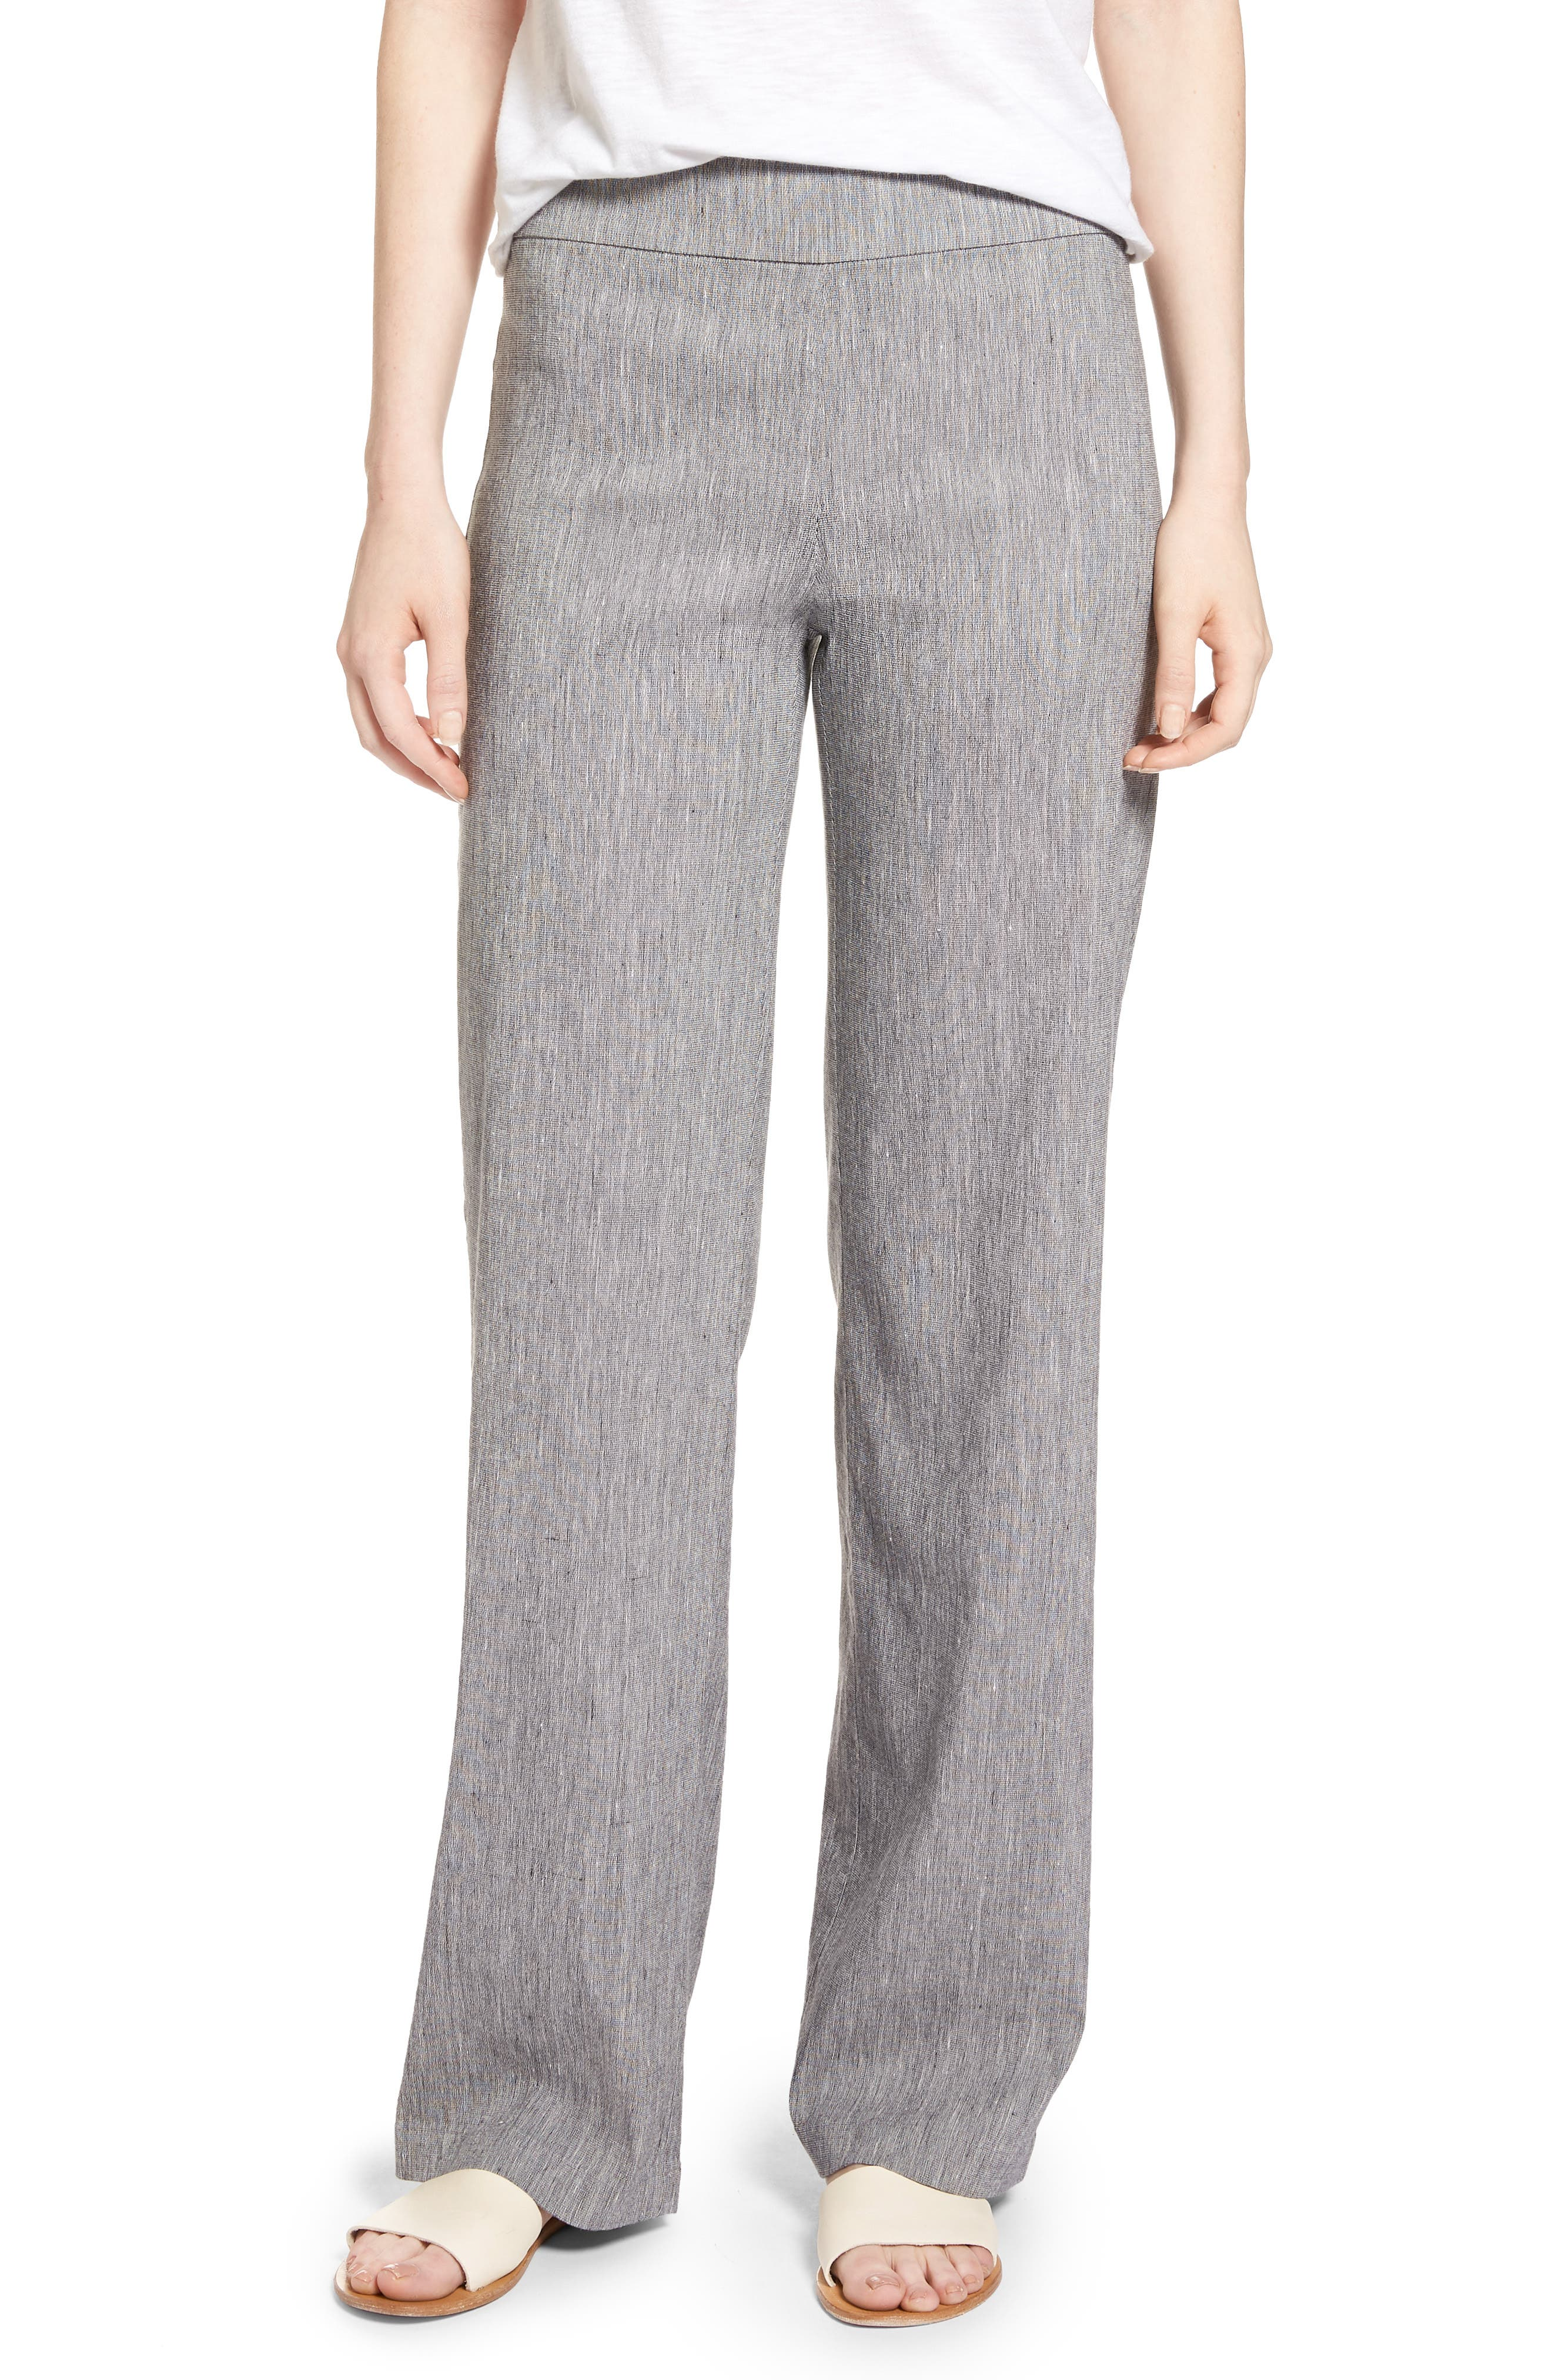 Here or There Linen Blend Pants,                         Main,                         color, 099